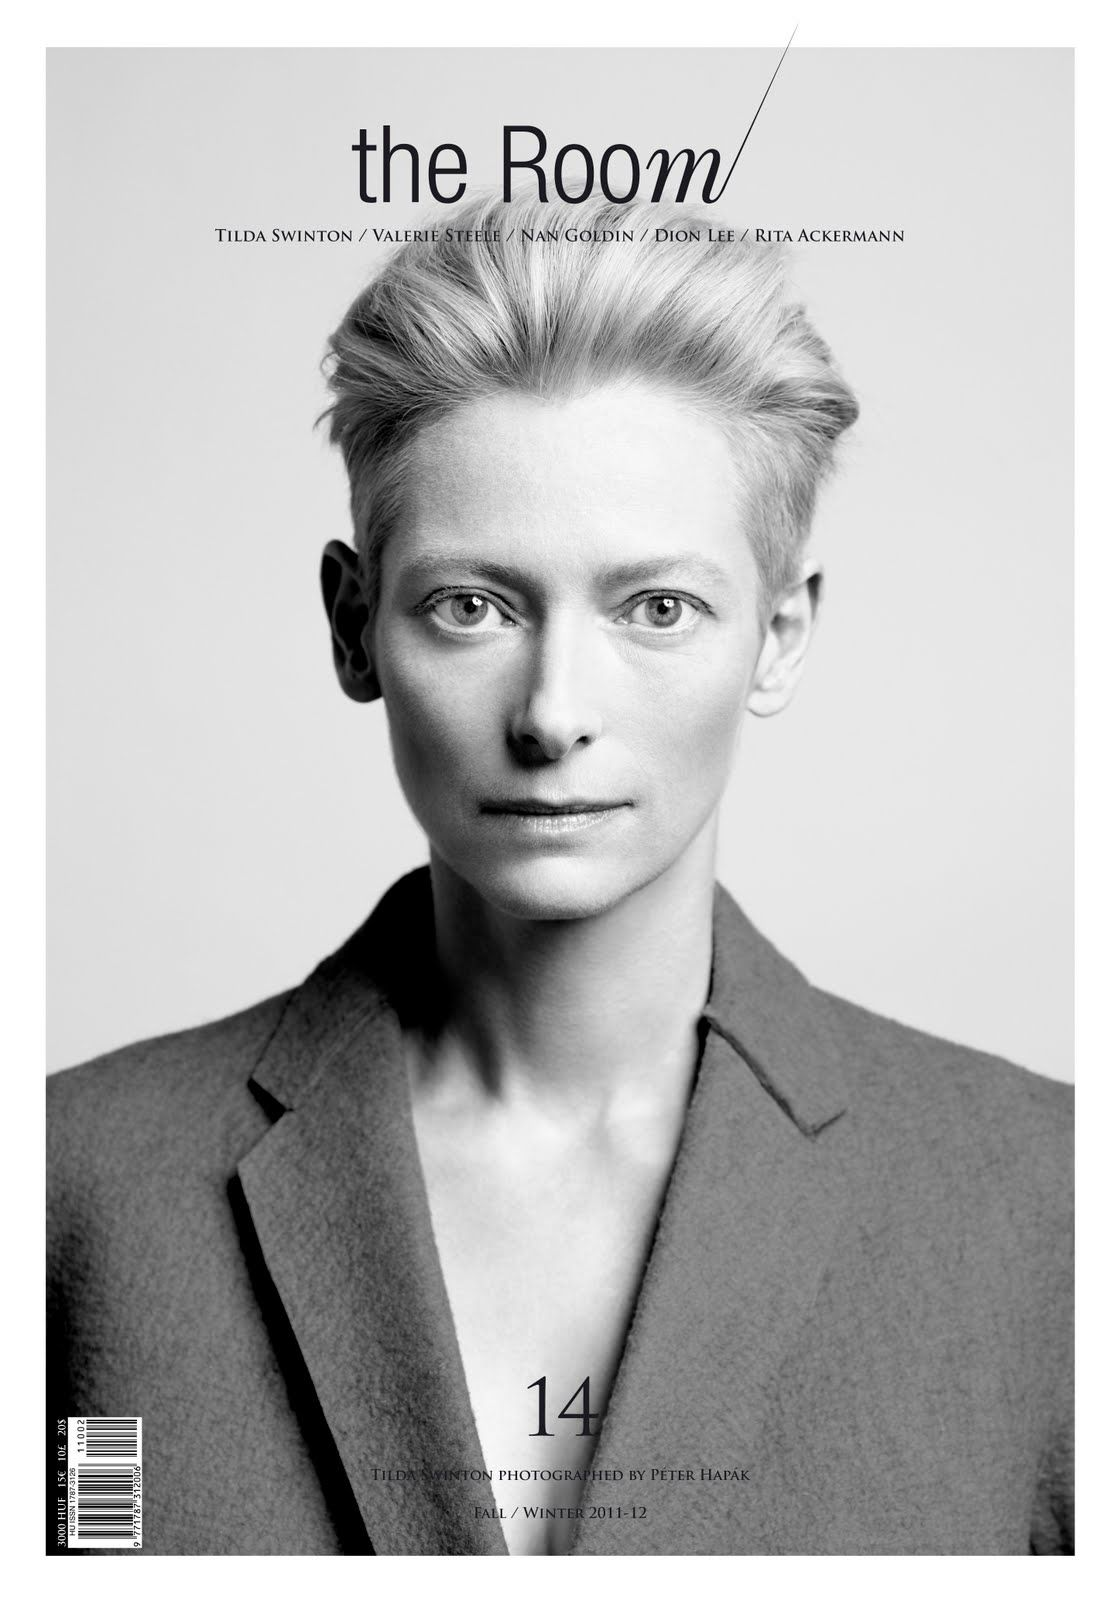 Its TILDA fucking SWINTON.    From the wicked witch in Narnia to her unorthodox taste in fashion.    Did I mention she is an academy-award winner. One of teh few actresses that can really act.